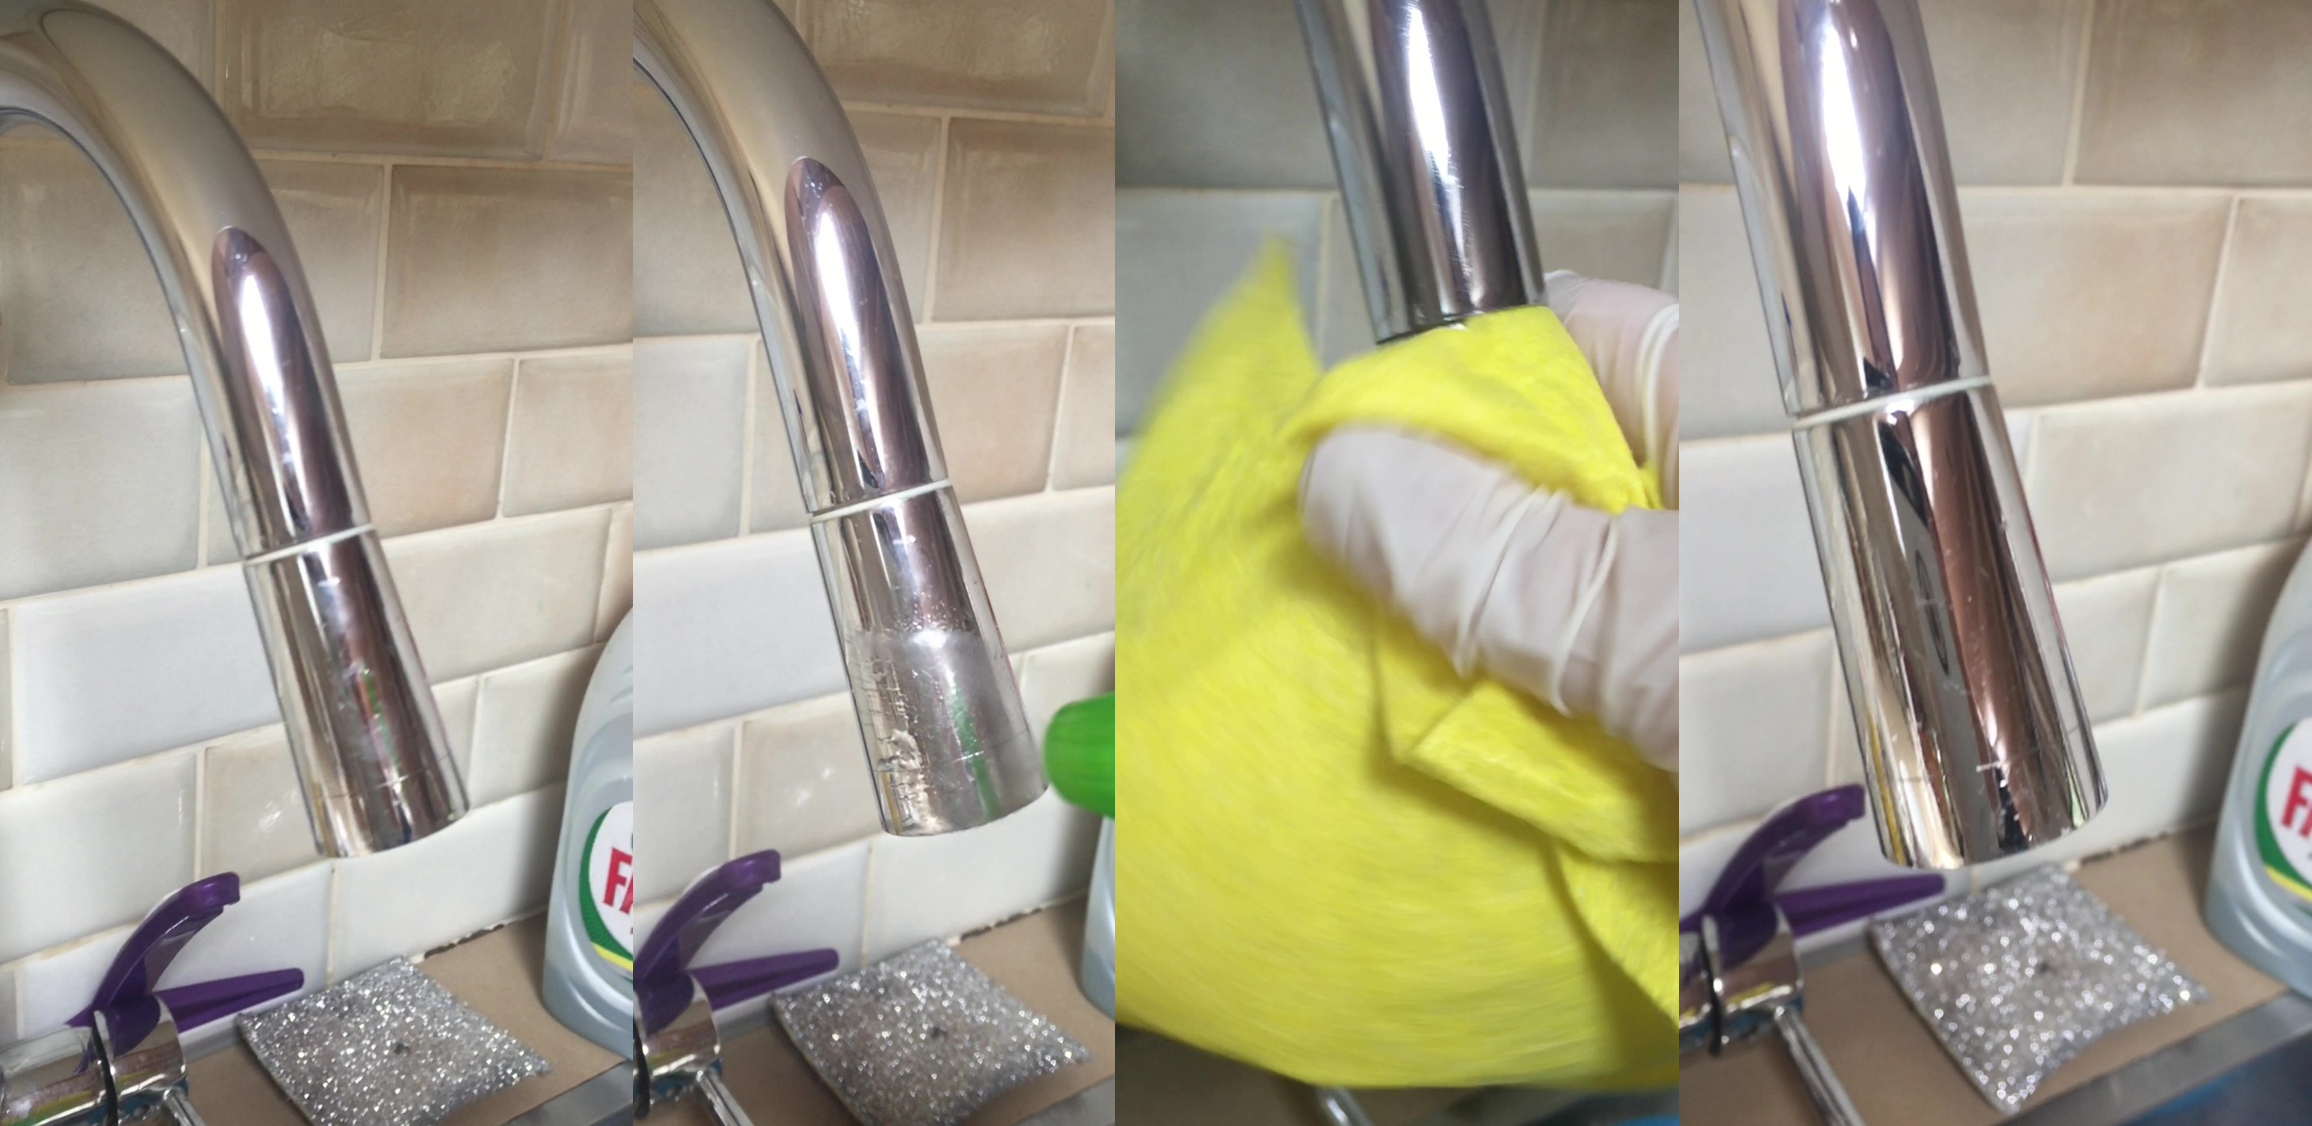 Picture of Stainless Steel Cleaner